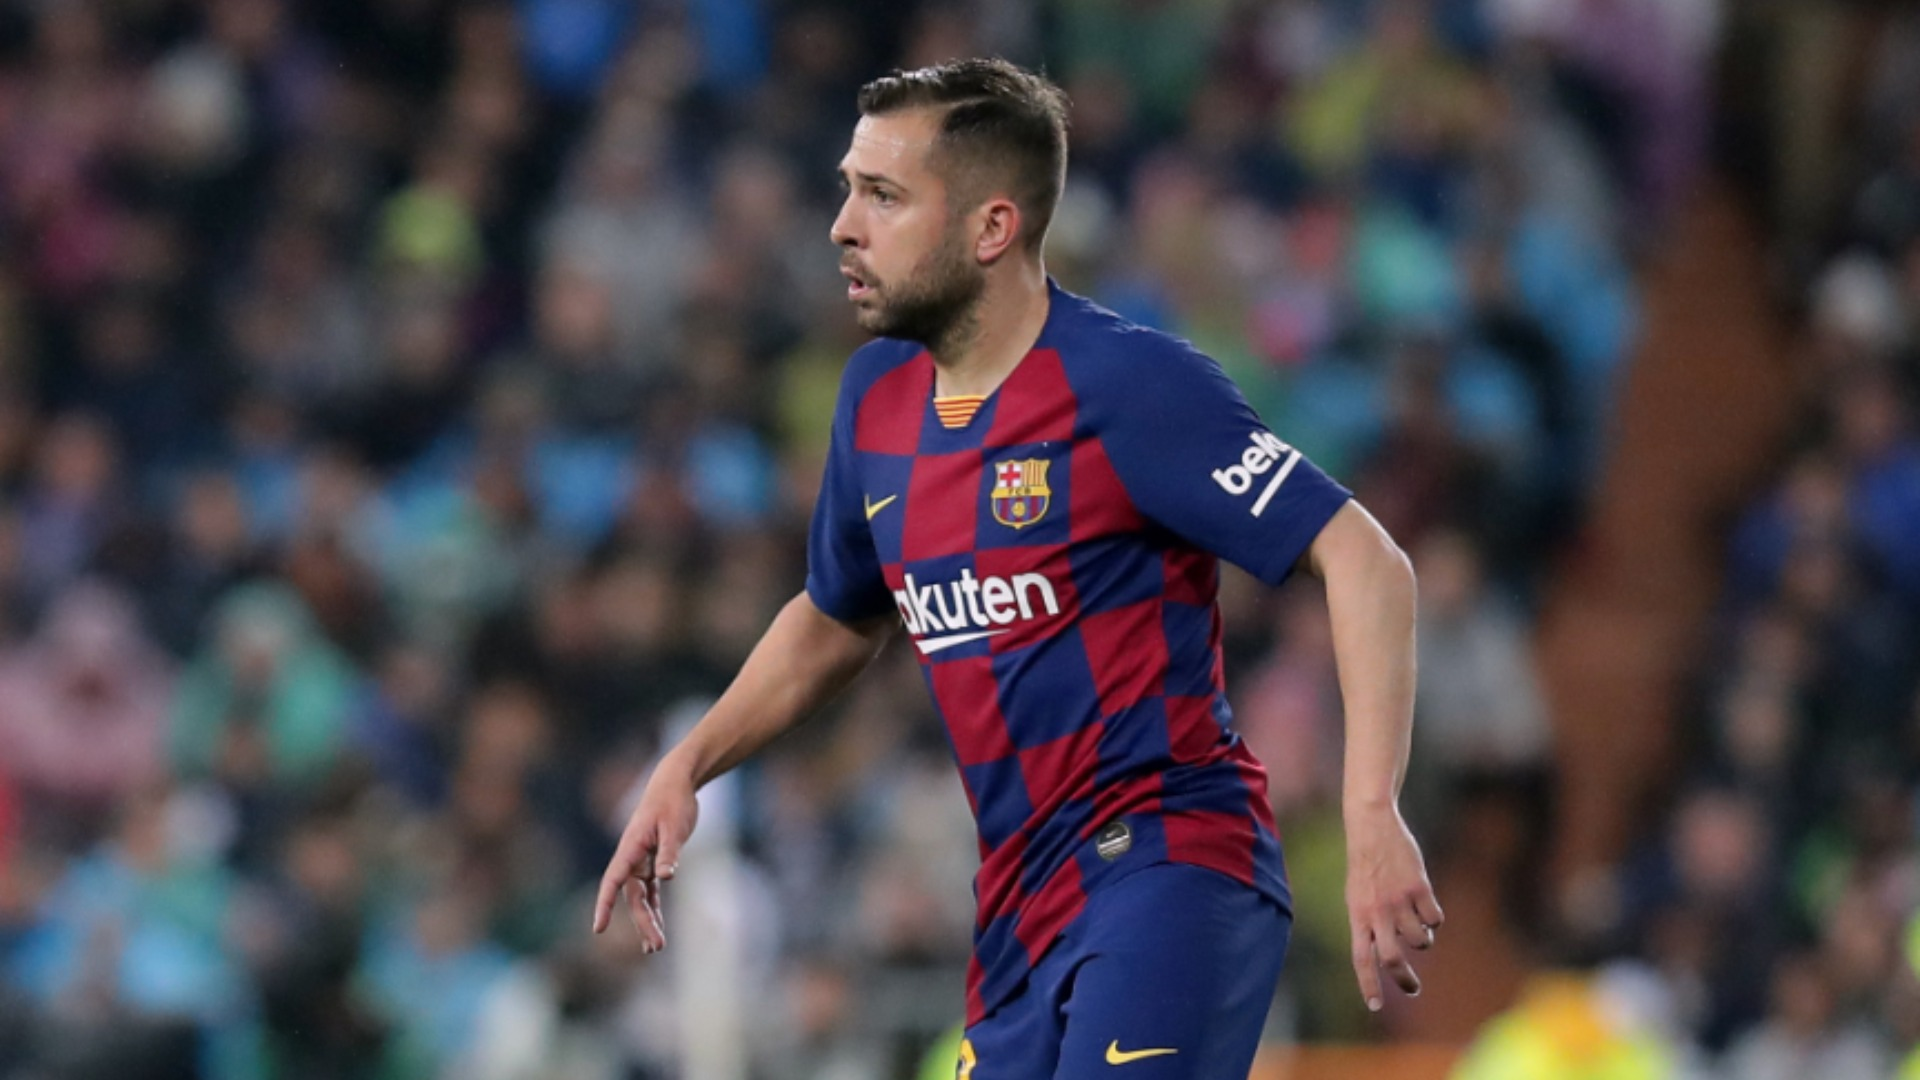 Jordi Alba wants 'respect' after Camp Nou jeers